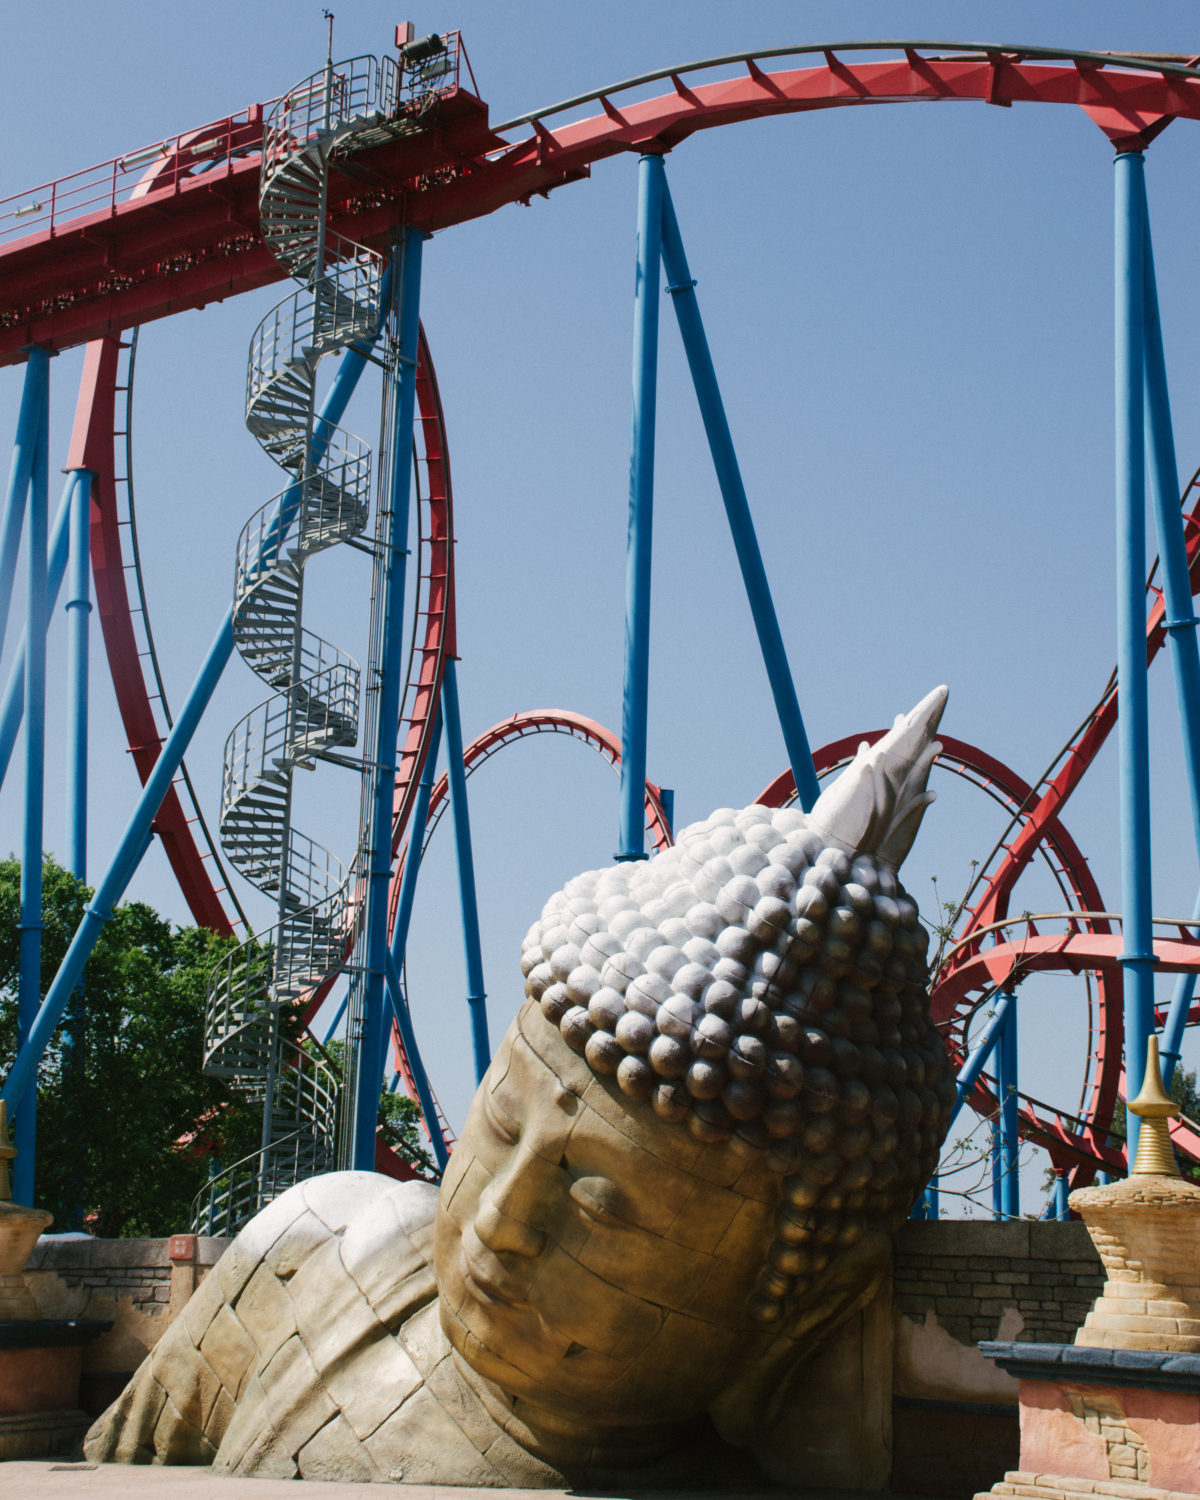 Buddha structure at Port Aventura World, Spain. Red Khan roller coaster.